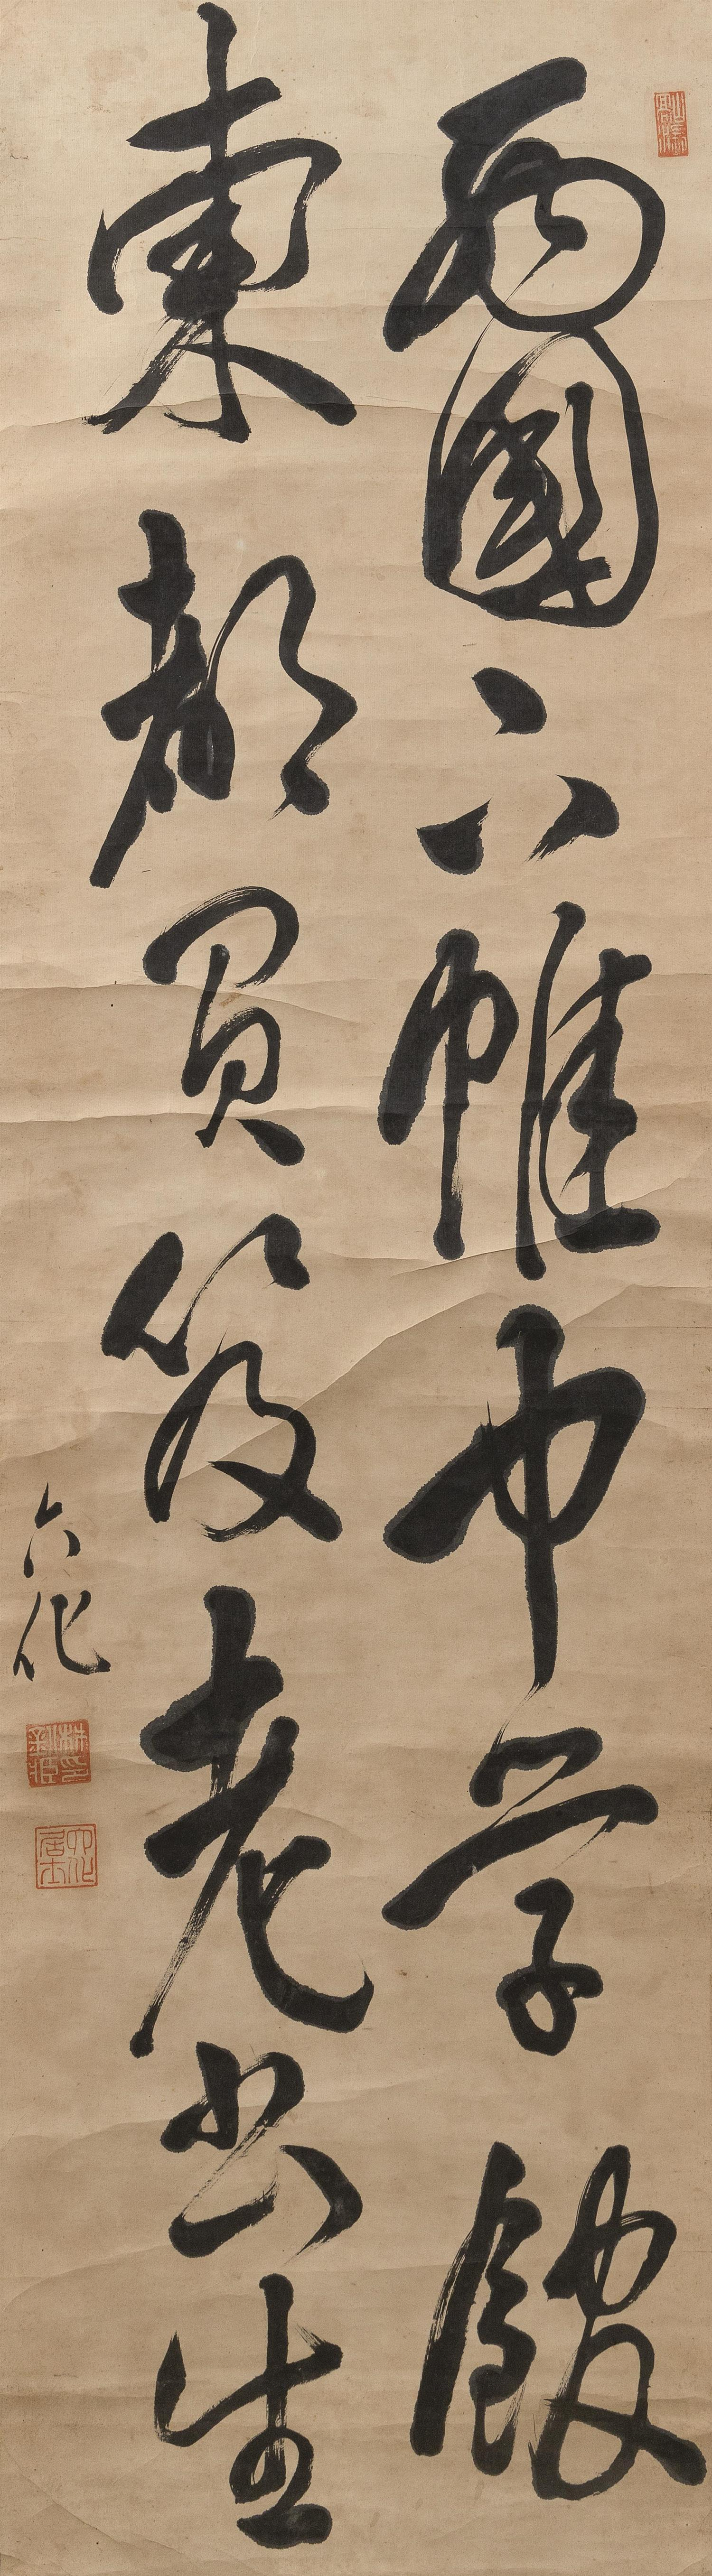 "JAPANESE CALLIGRAPHIC SCROLL PAINTING ON PAPER With 13 characters. Marked with signature and seal marks. 52.5"" x 14.25"". Provenance:..."